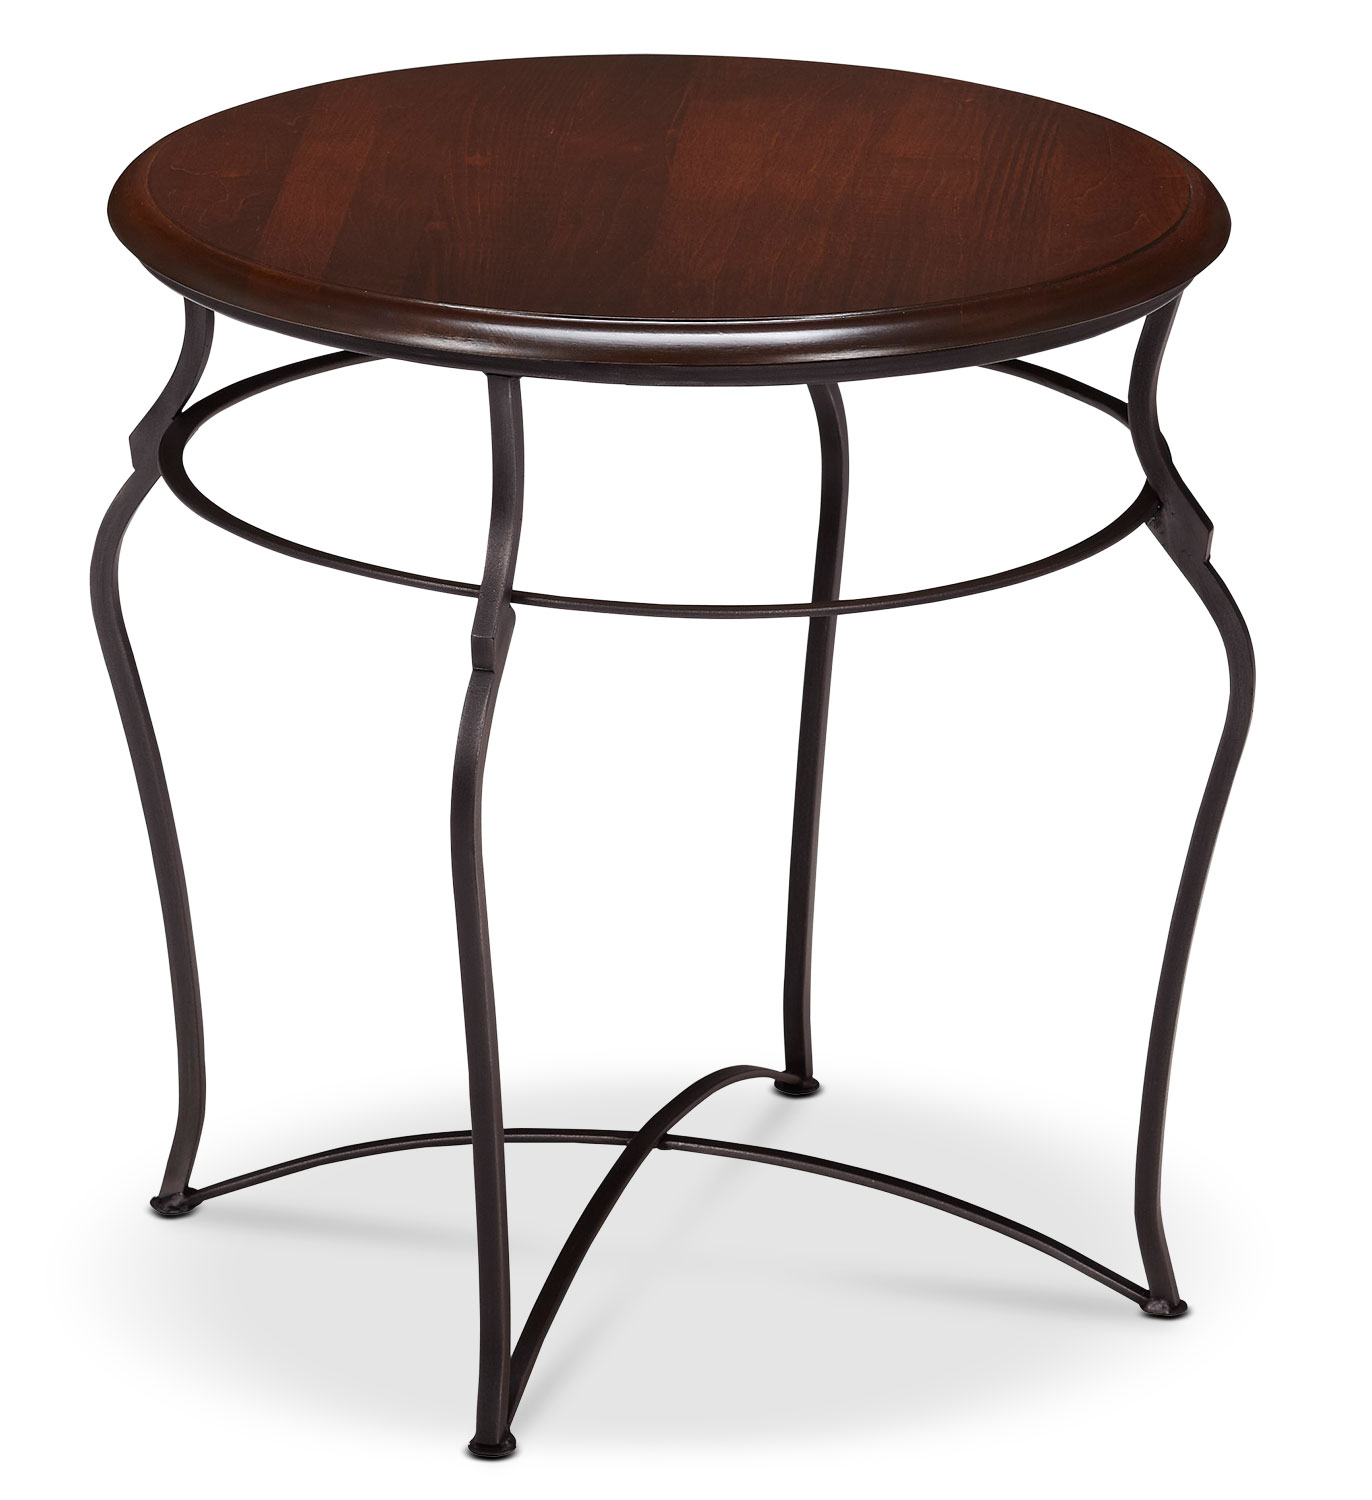 Online Only - Adele End Table - Brown Cherry with Black Base